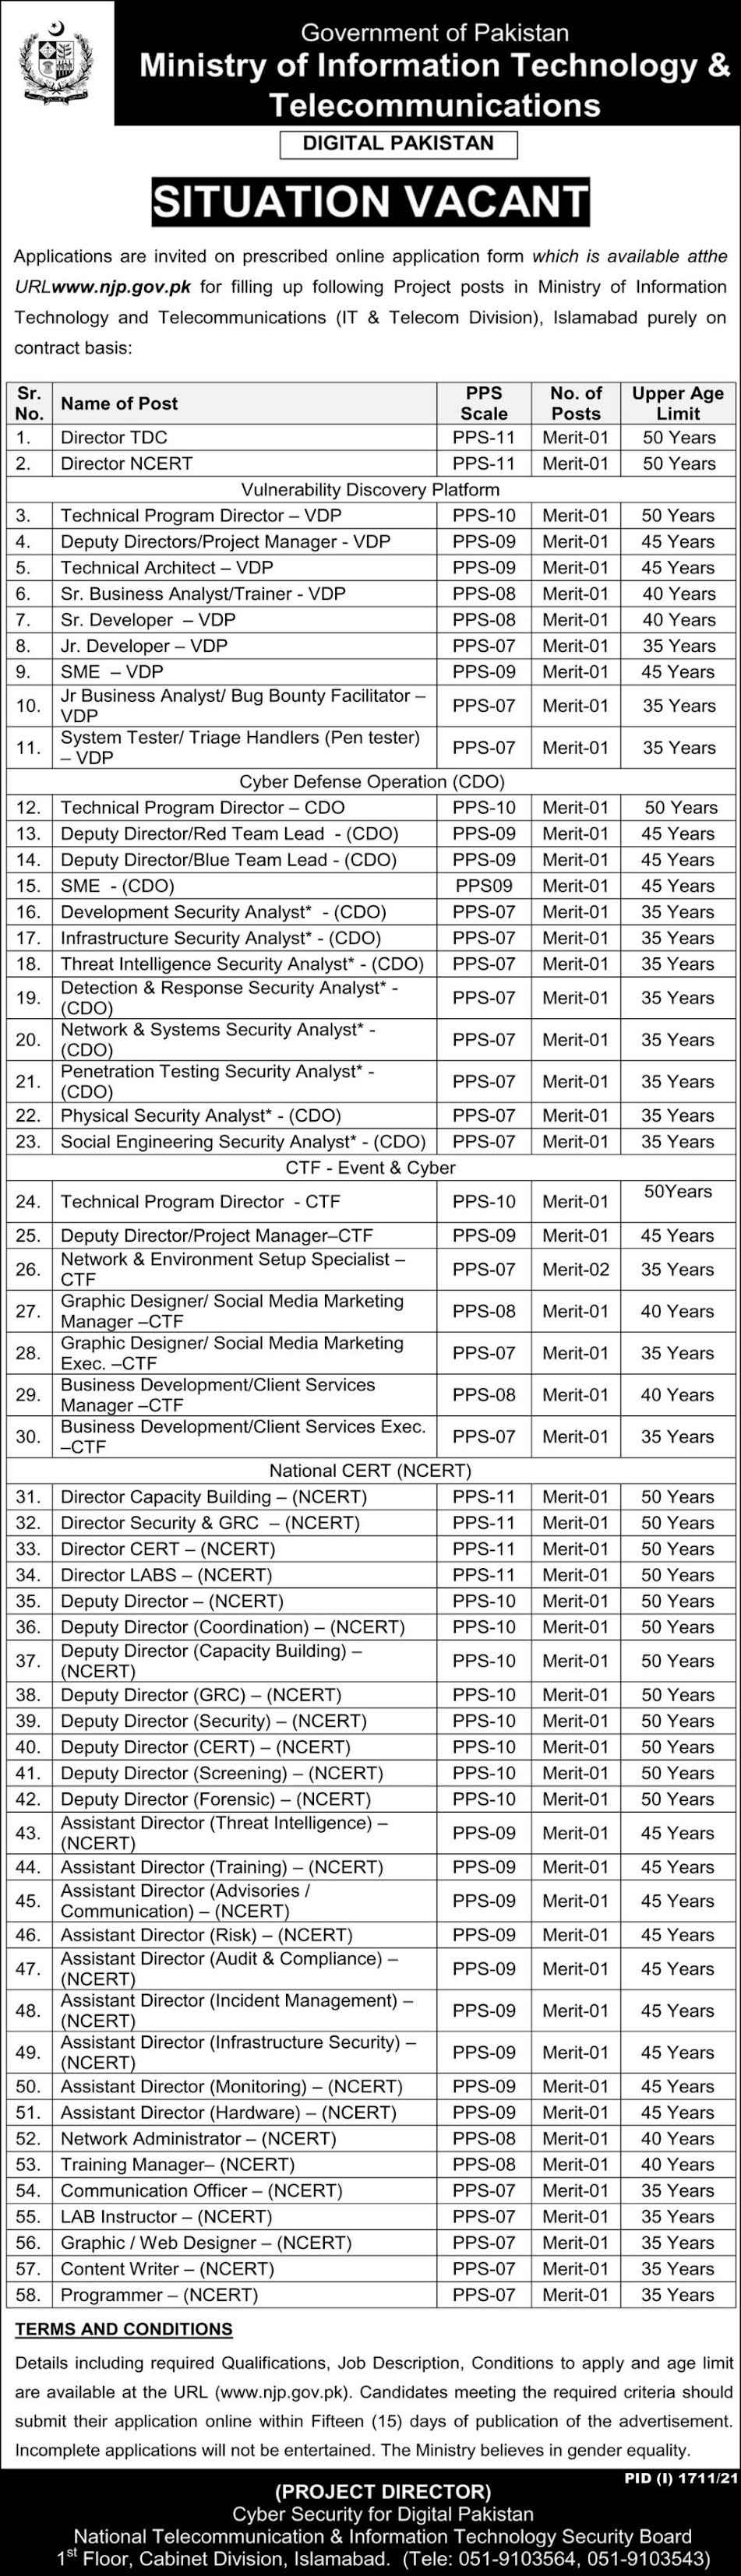 Ministry Of Information Technology Telecommunication Jobs 2021